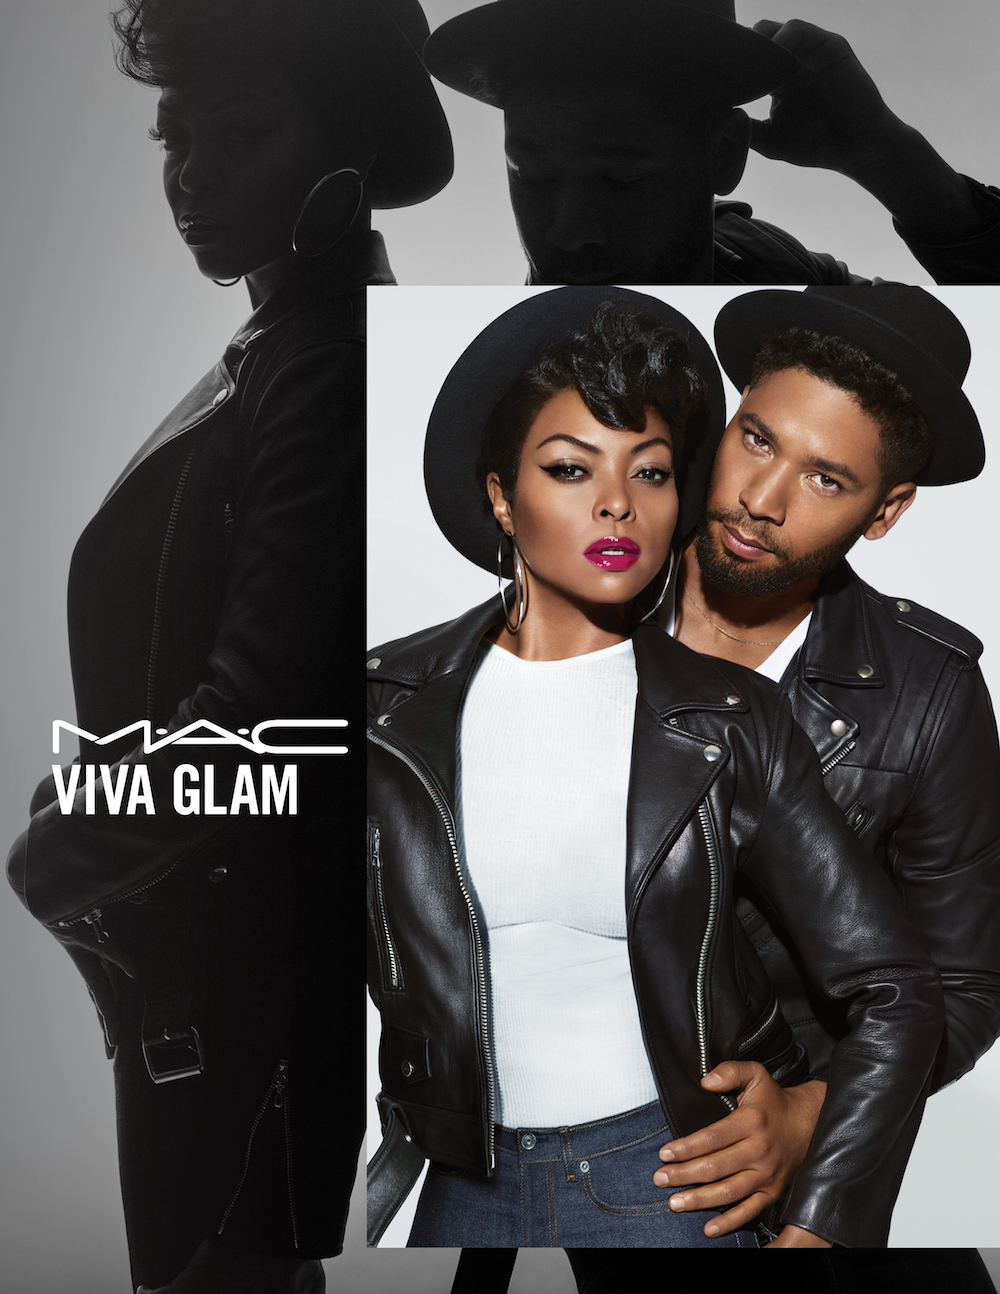 Taraji P. Henson's MAC Cosmetics Viva Glam collab is coming out soon, so get your wallets ready